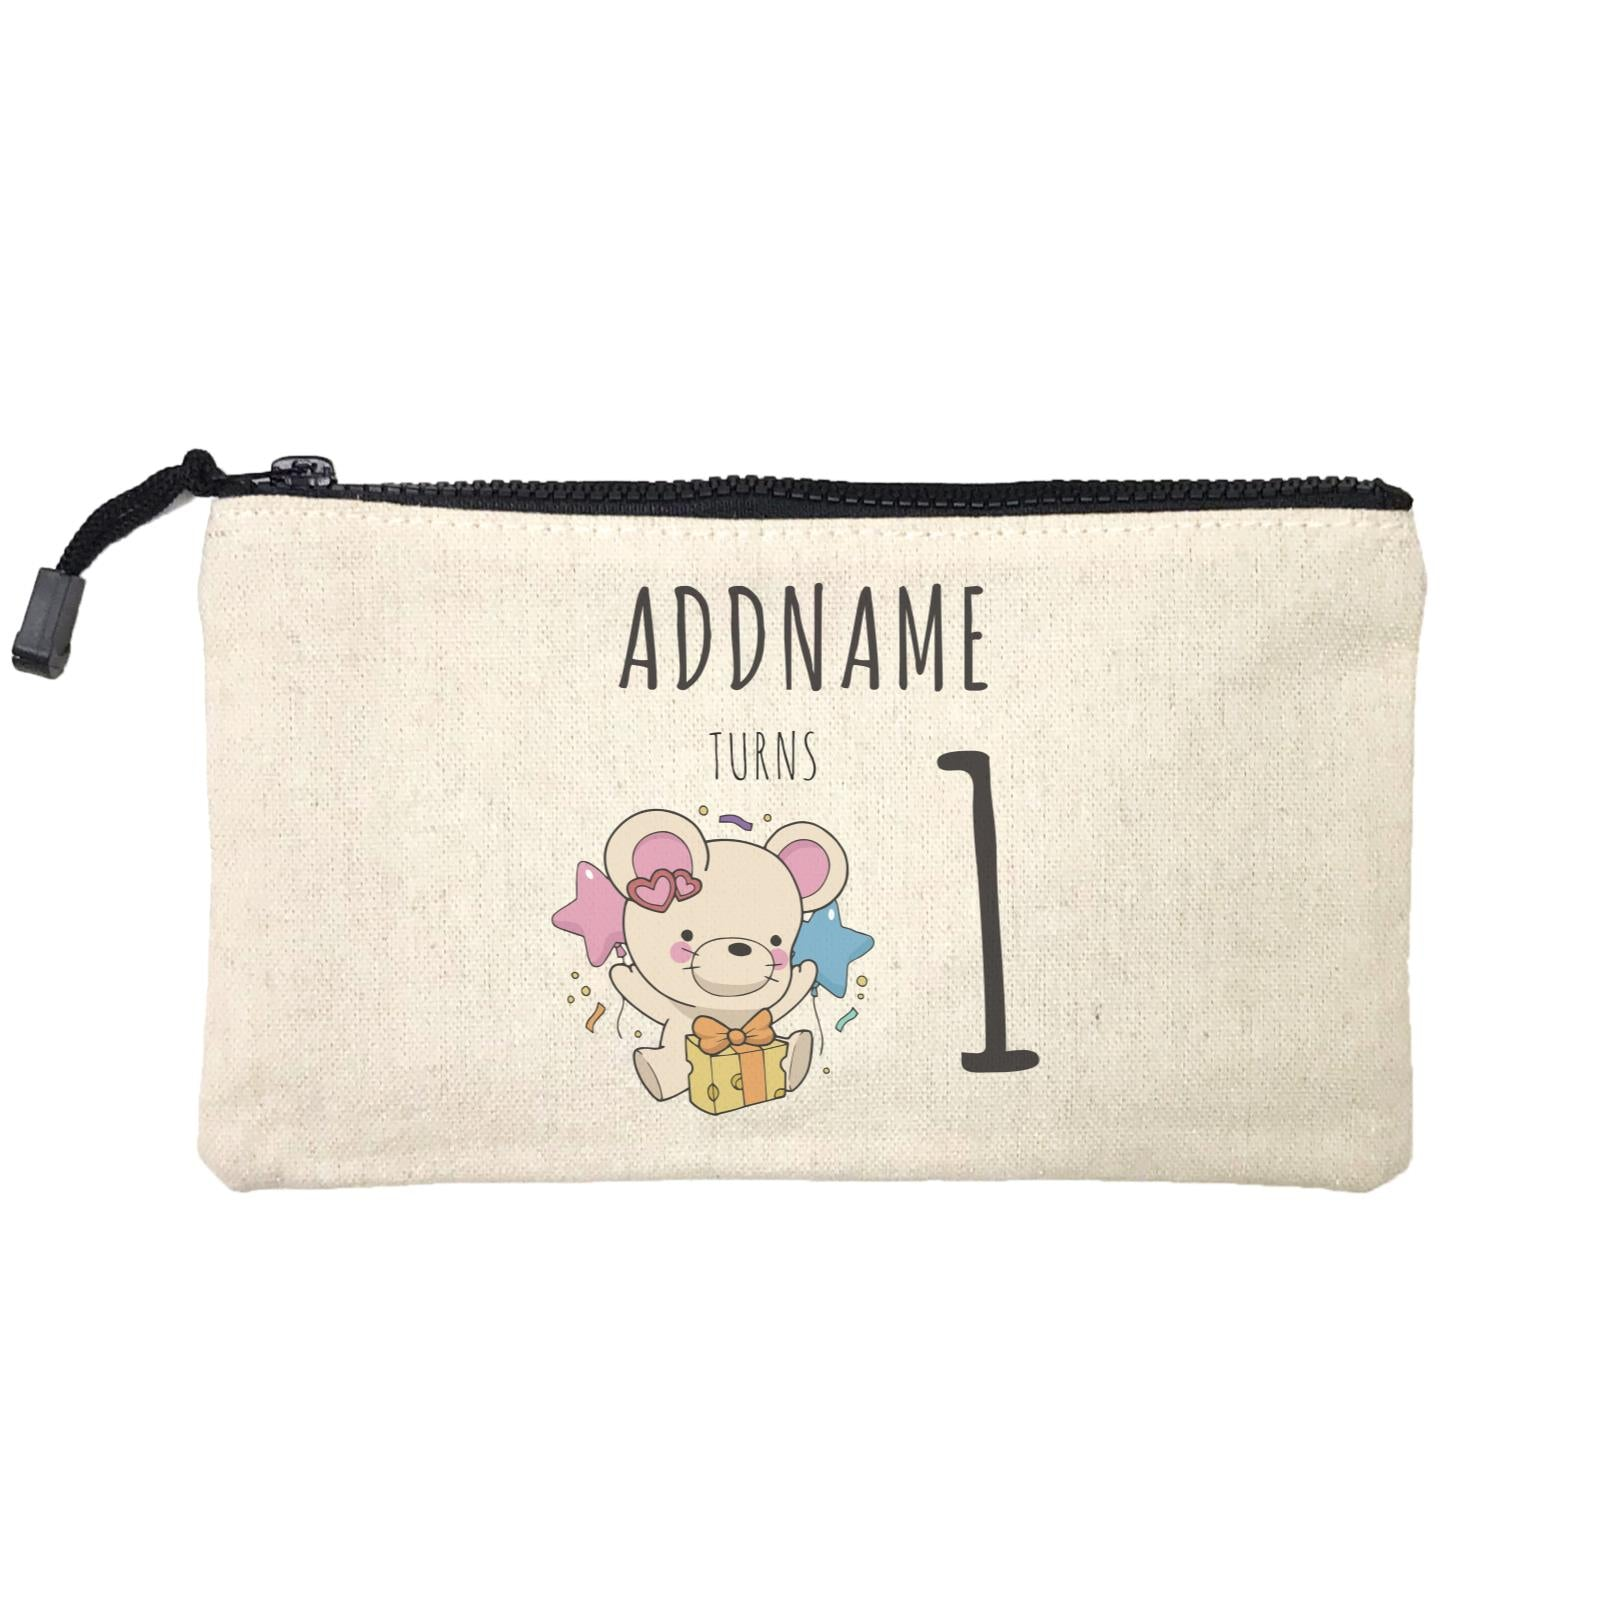 Birthday Sketch Animals Mouse with Cheese Present Addname Turns 1 Mini Accessories Stationery Pouch